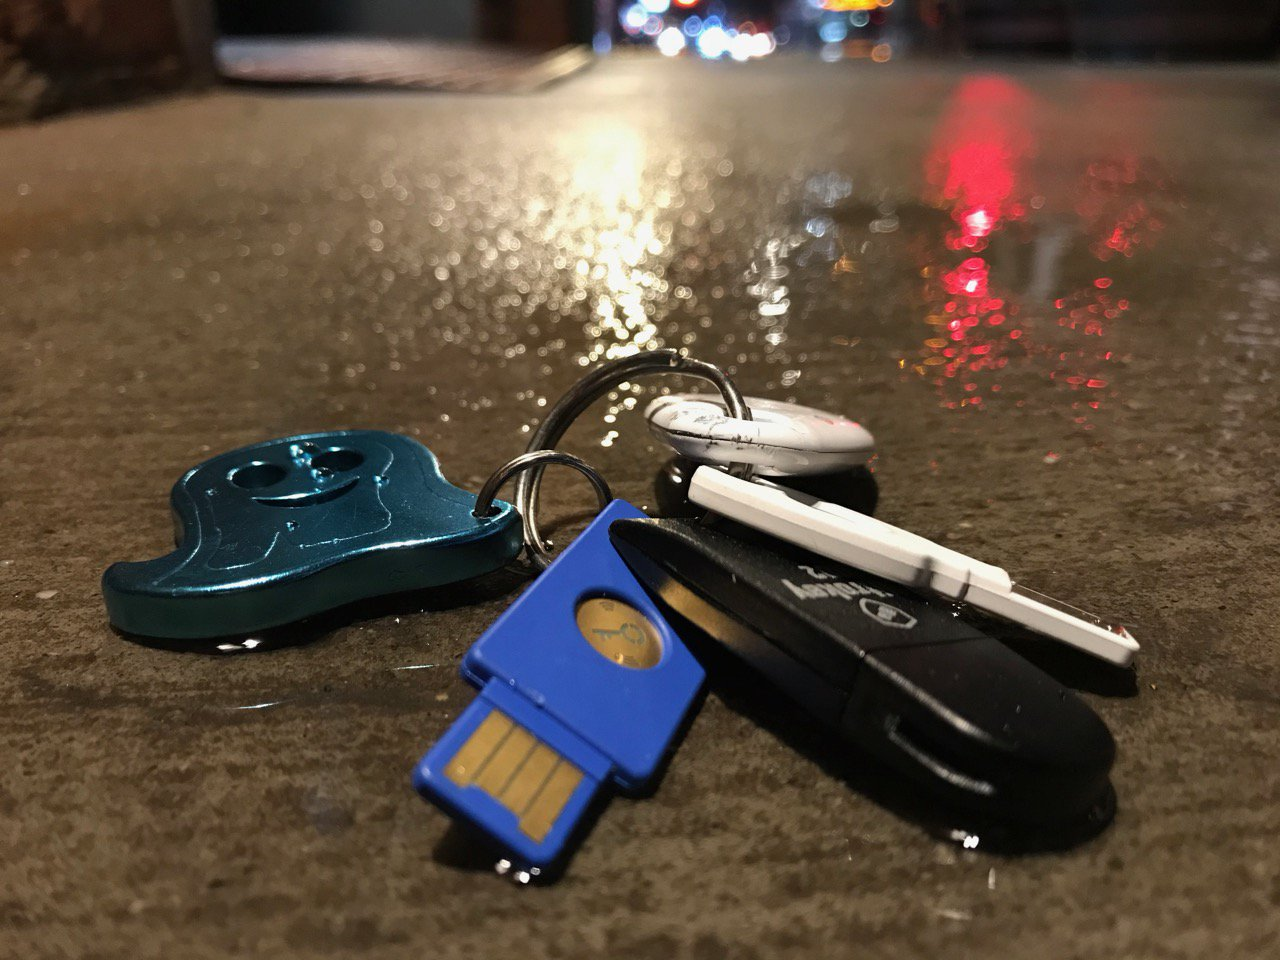 Security keys on a cold, wet NYC sidewalk